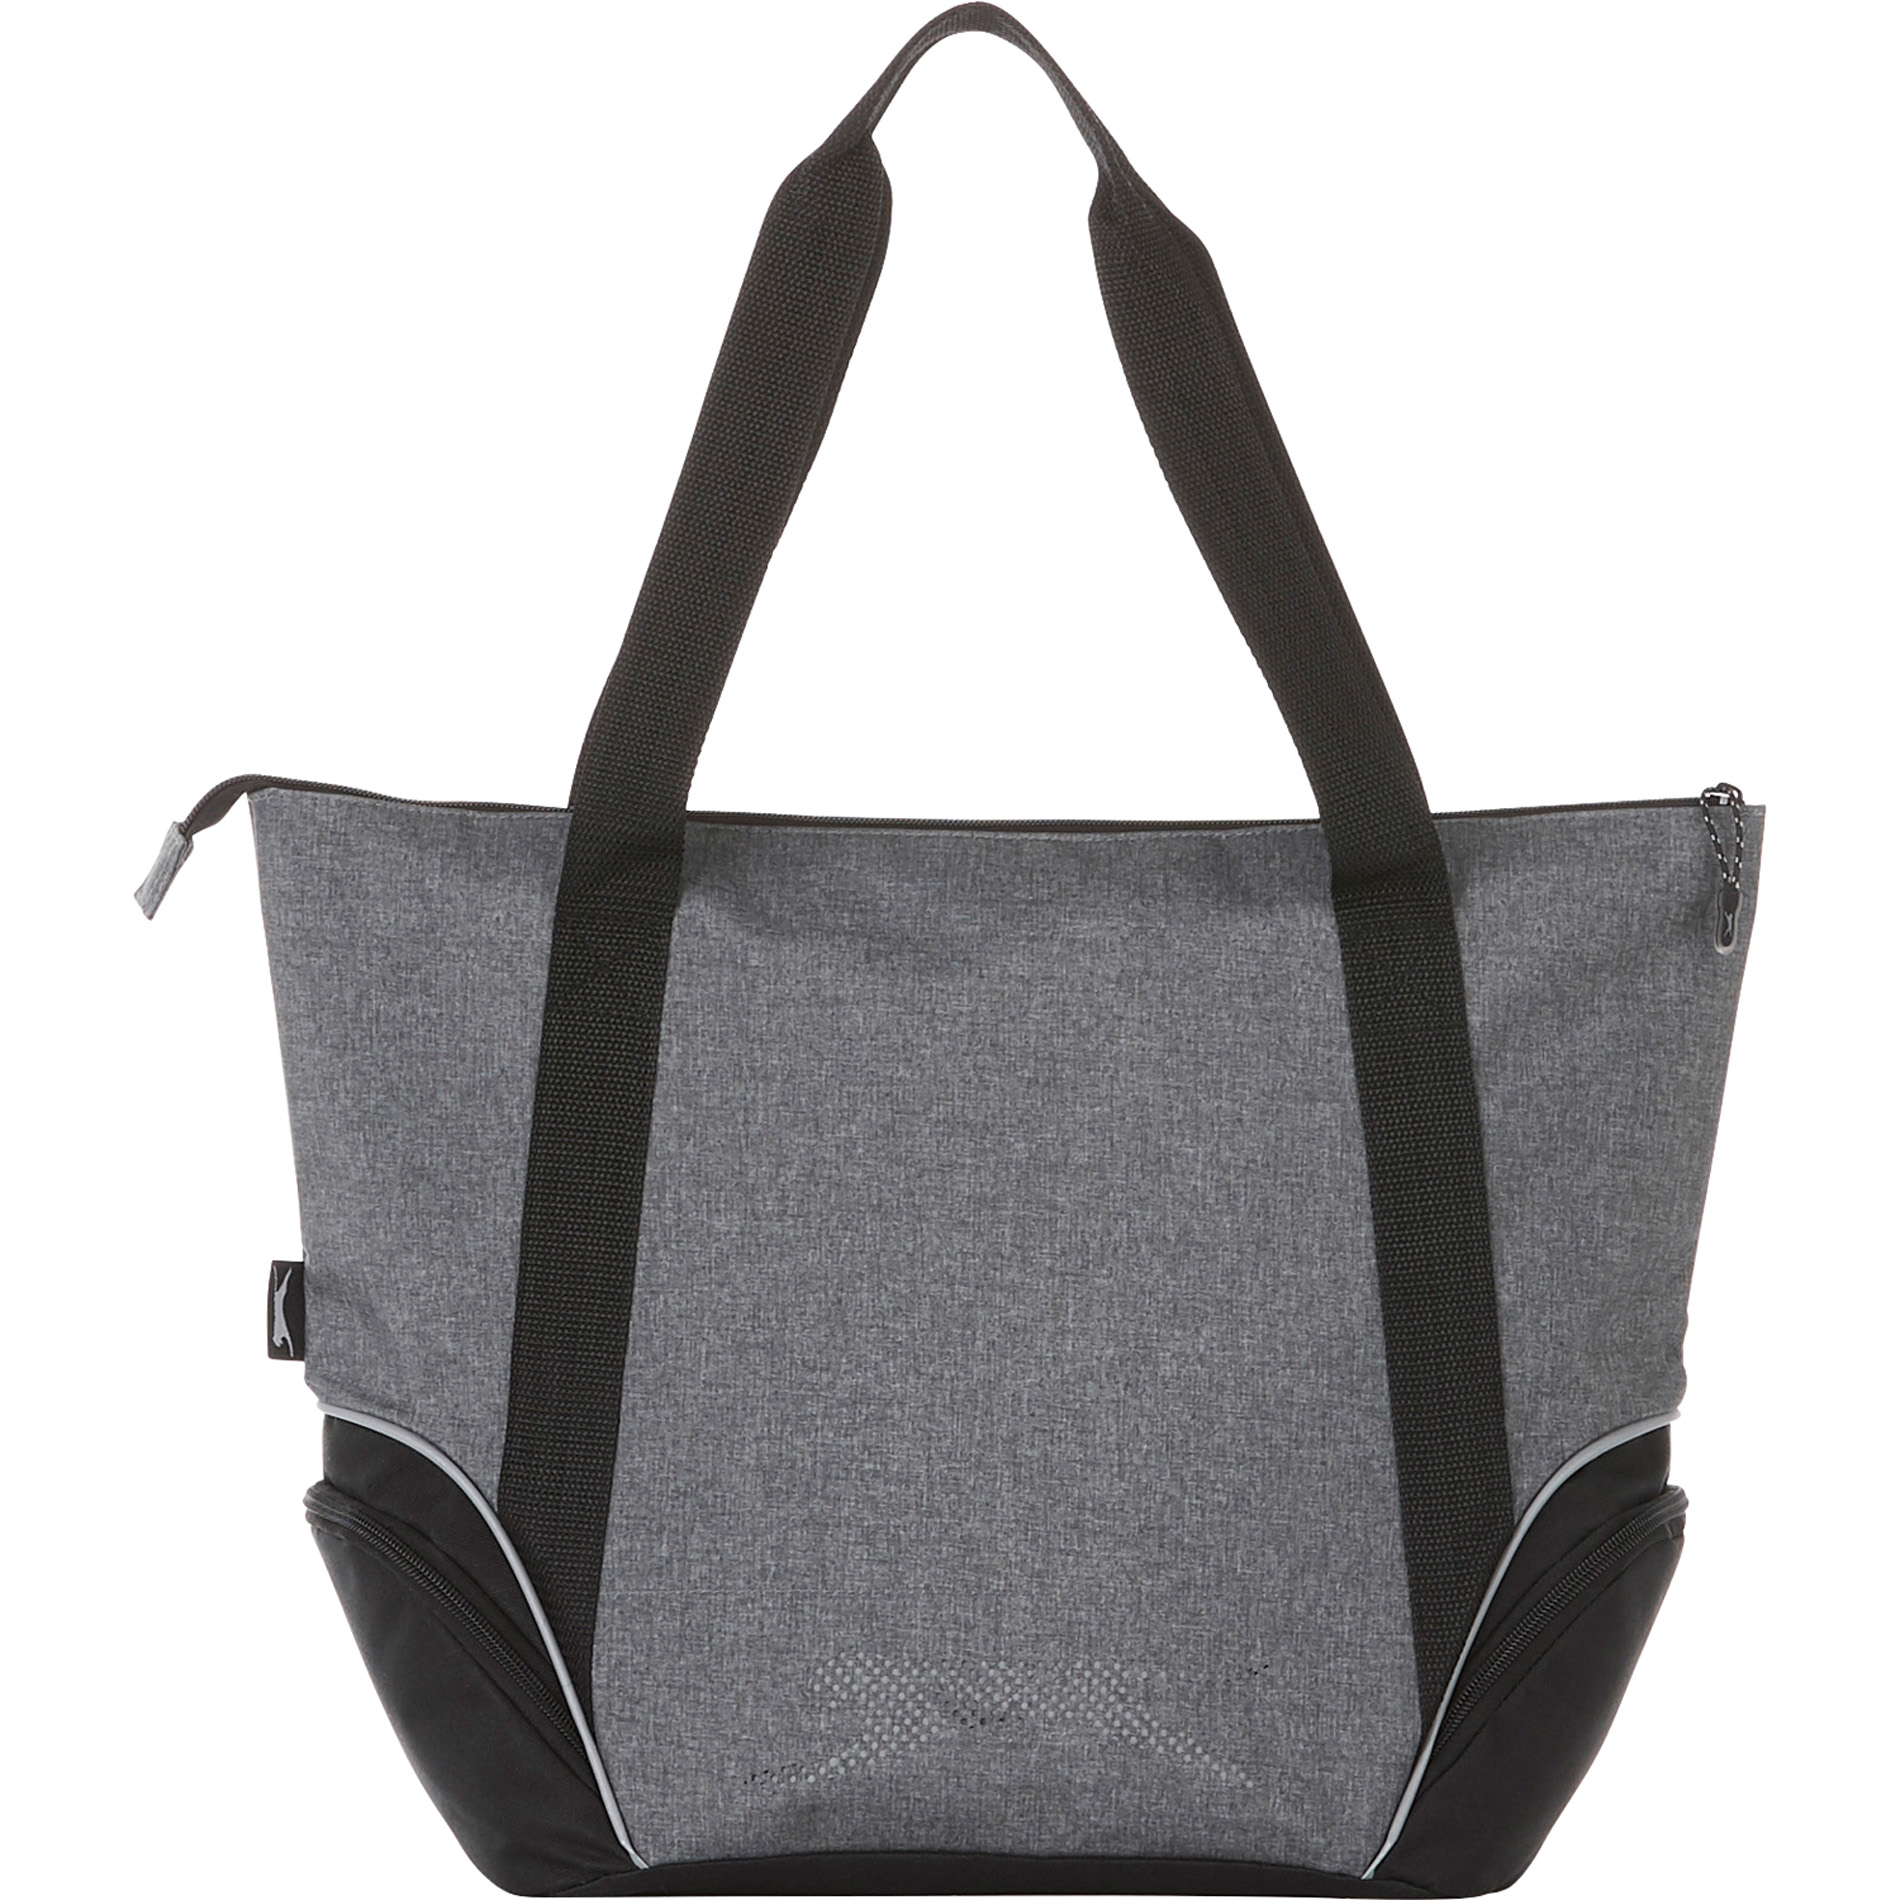 Slazenger 6050-21 - Competition Fitness Tote